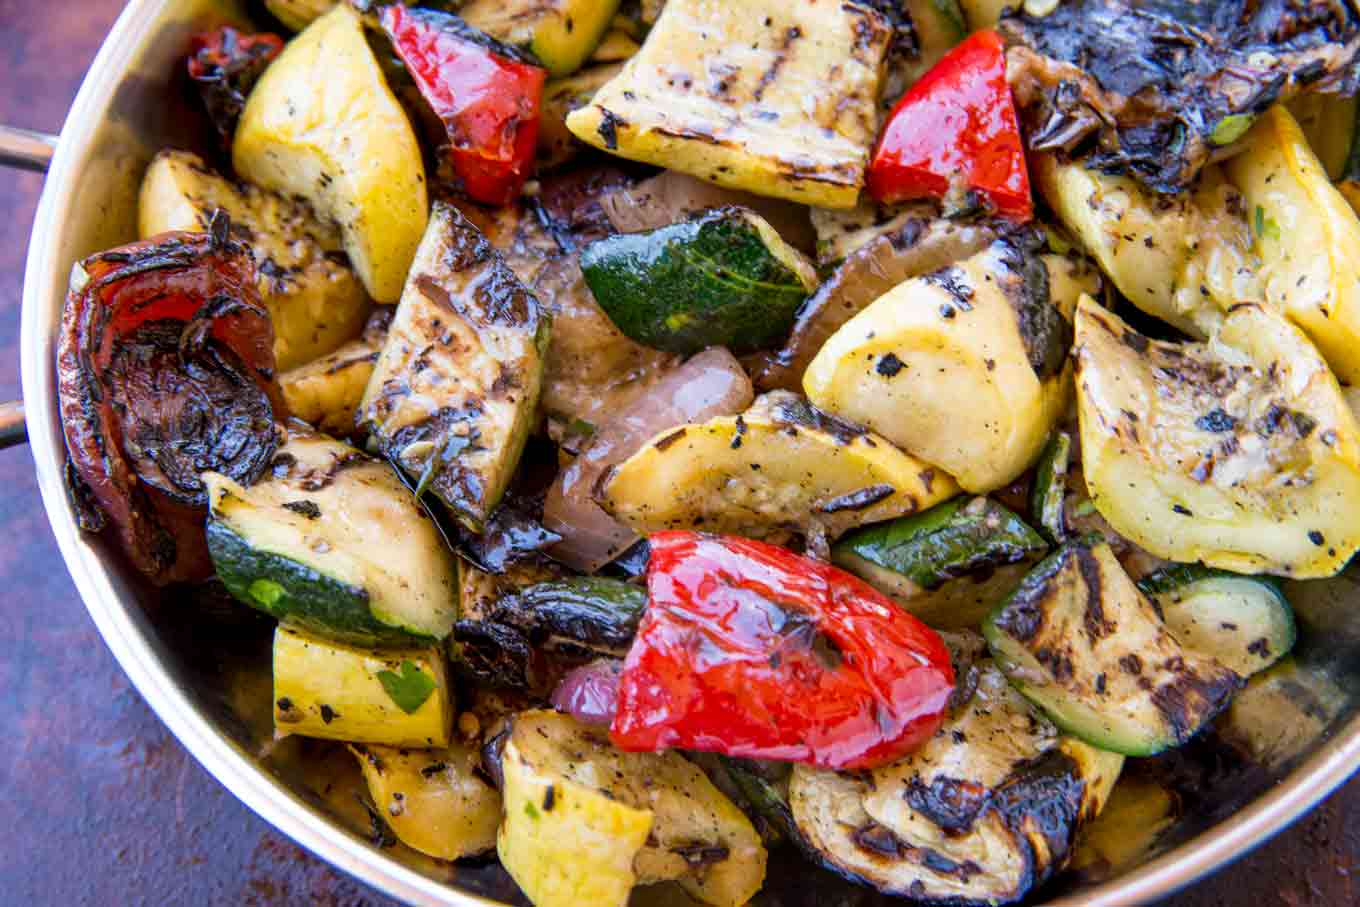 Balsamic Grilled Vegetables in Bowl